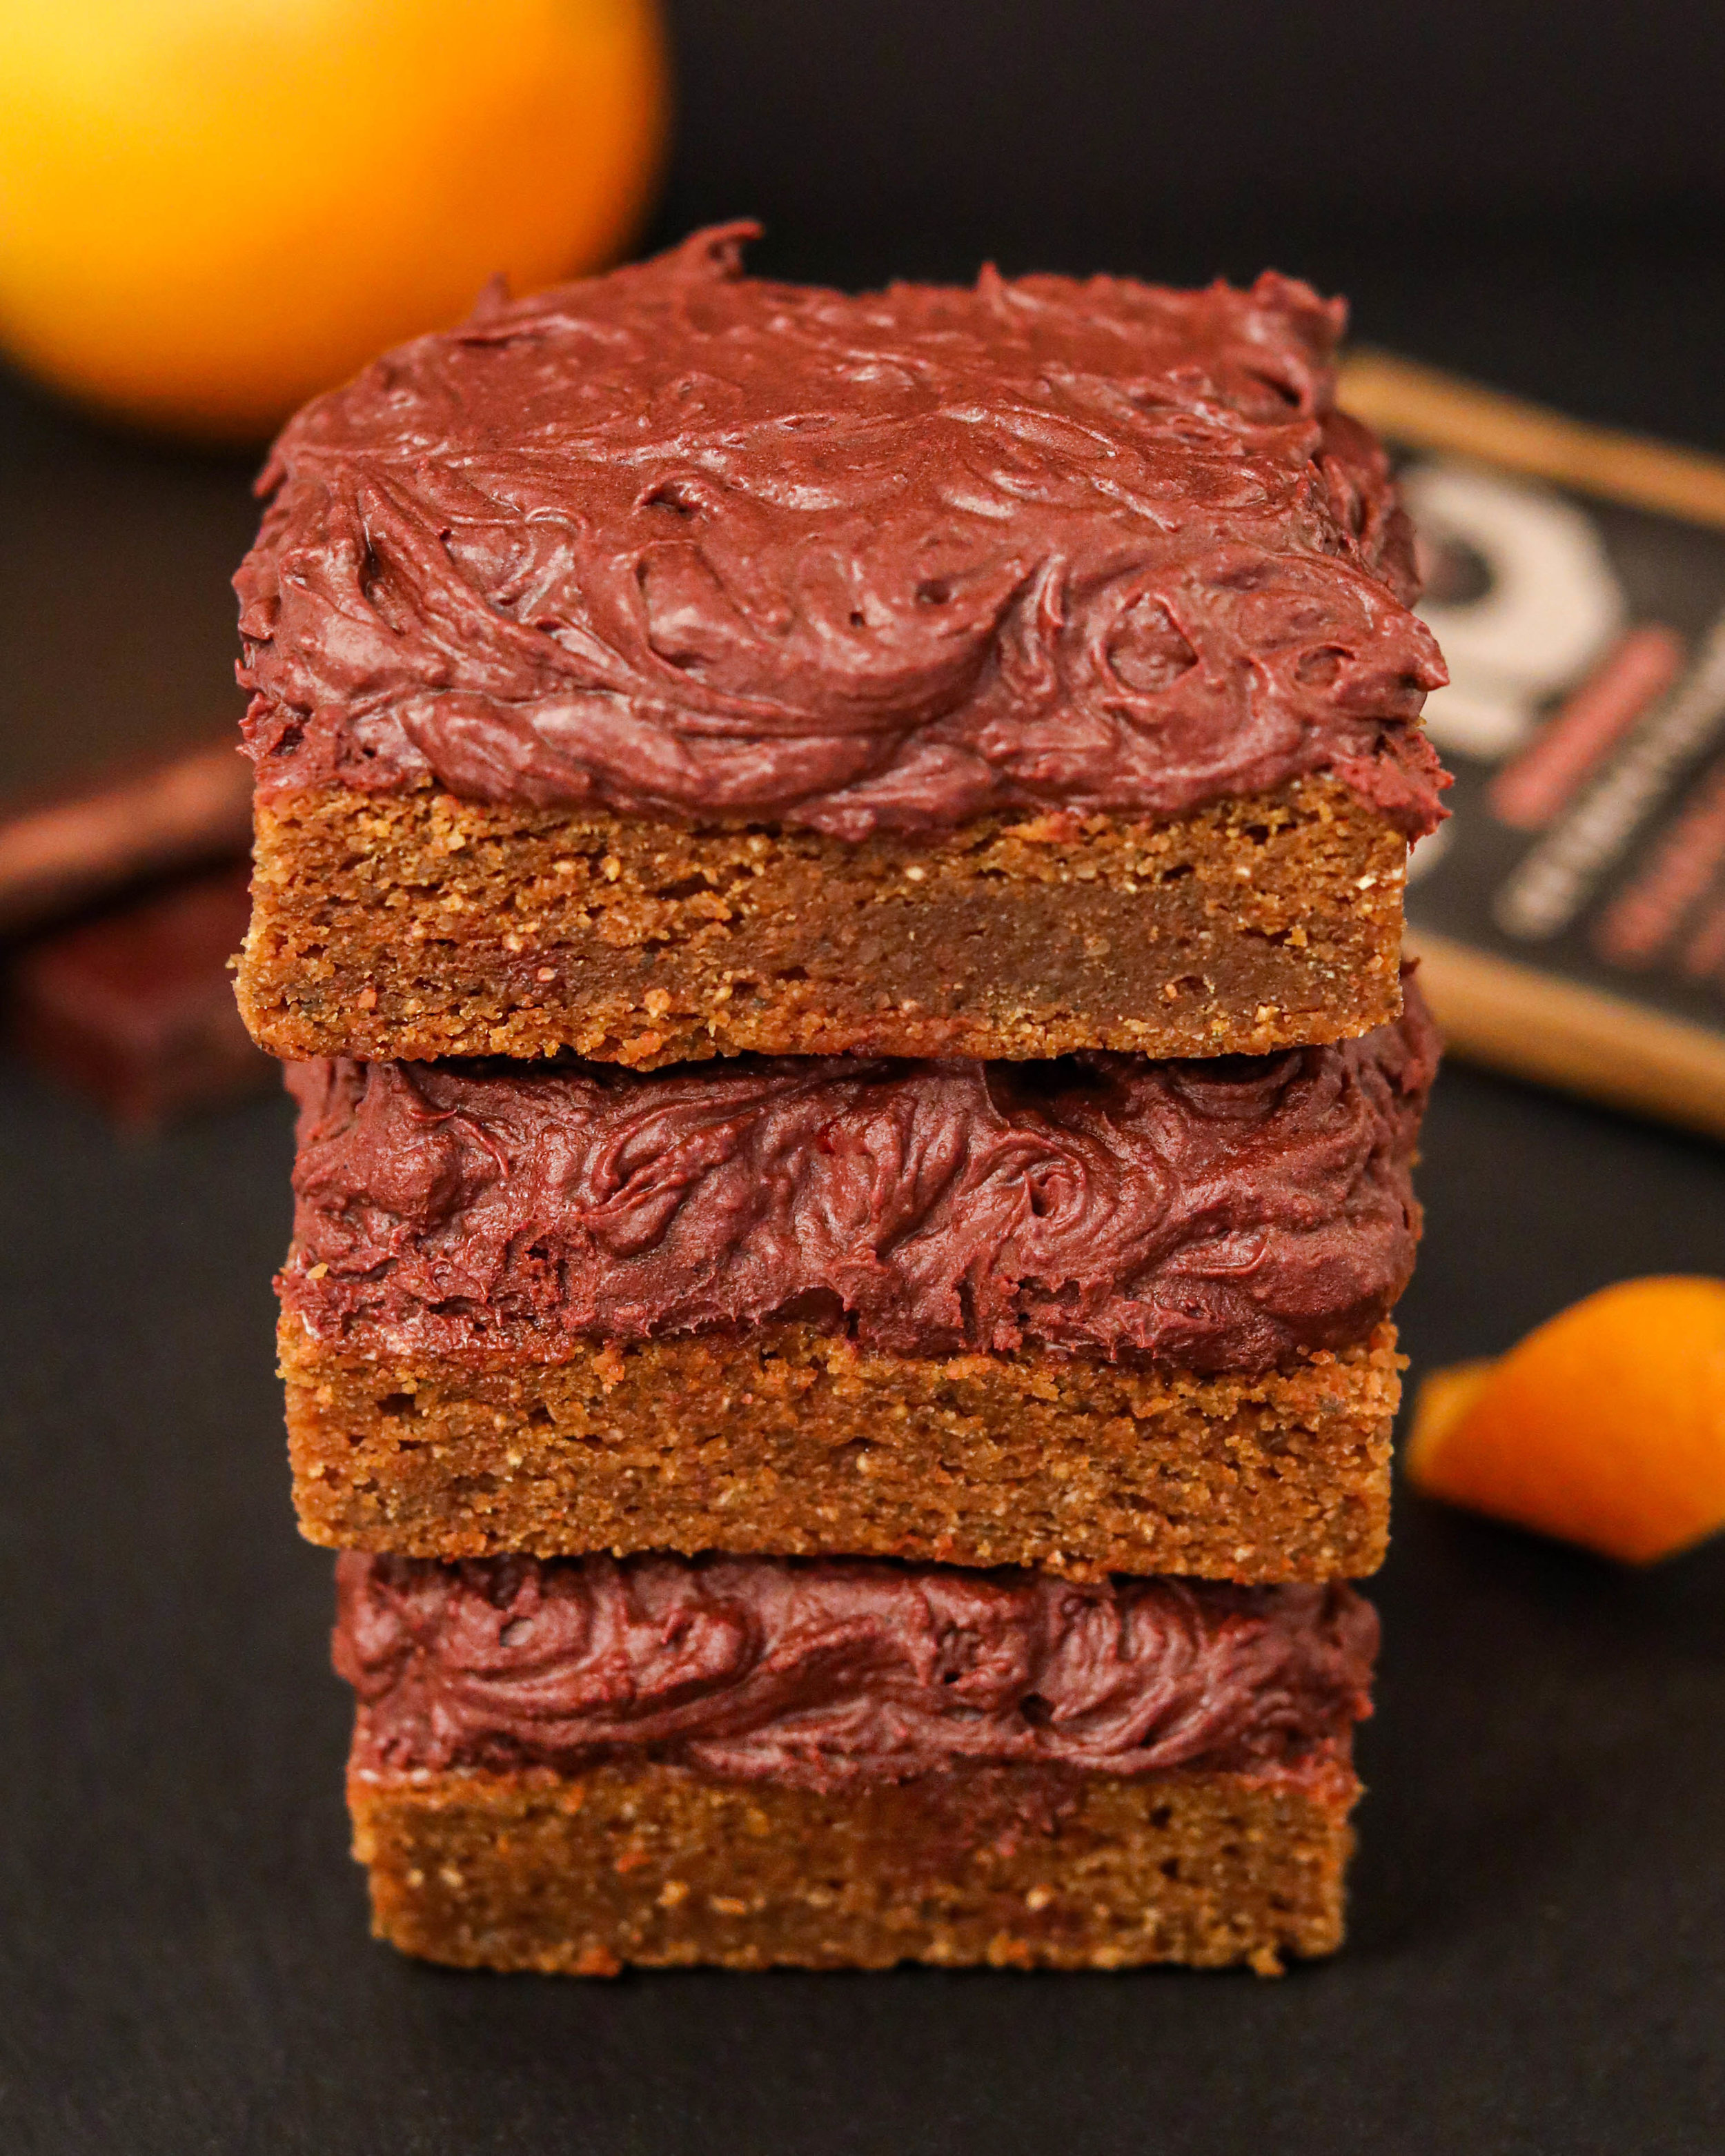 Orange Vegan Chocolate Ganche